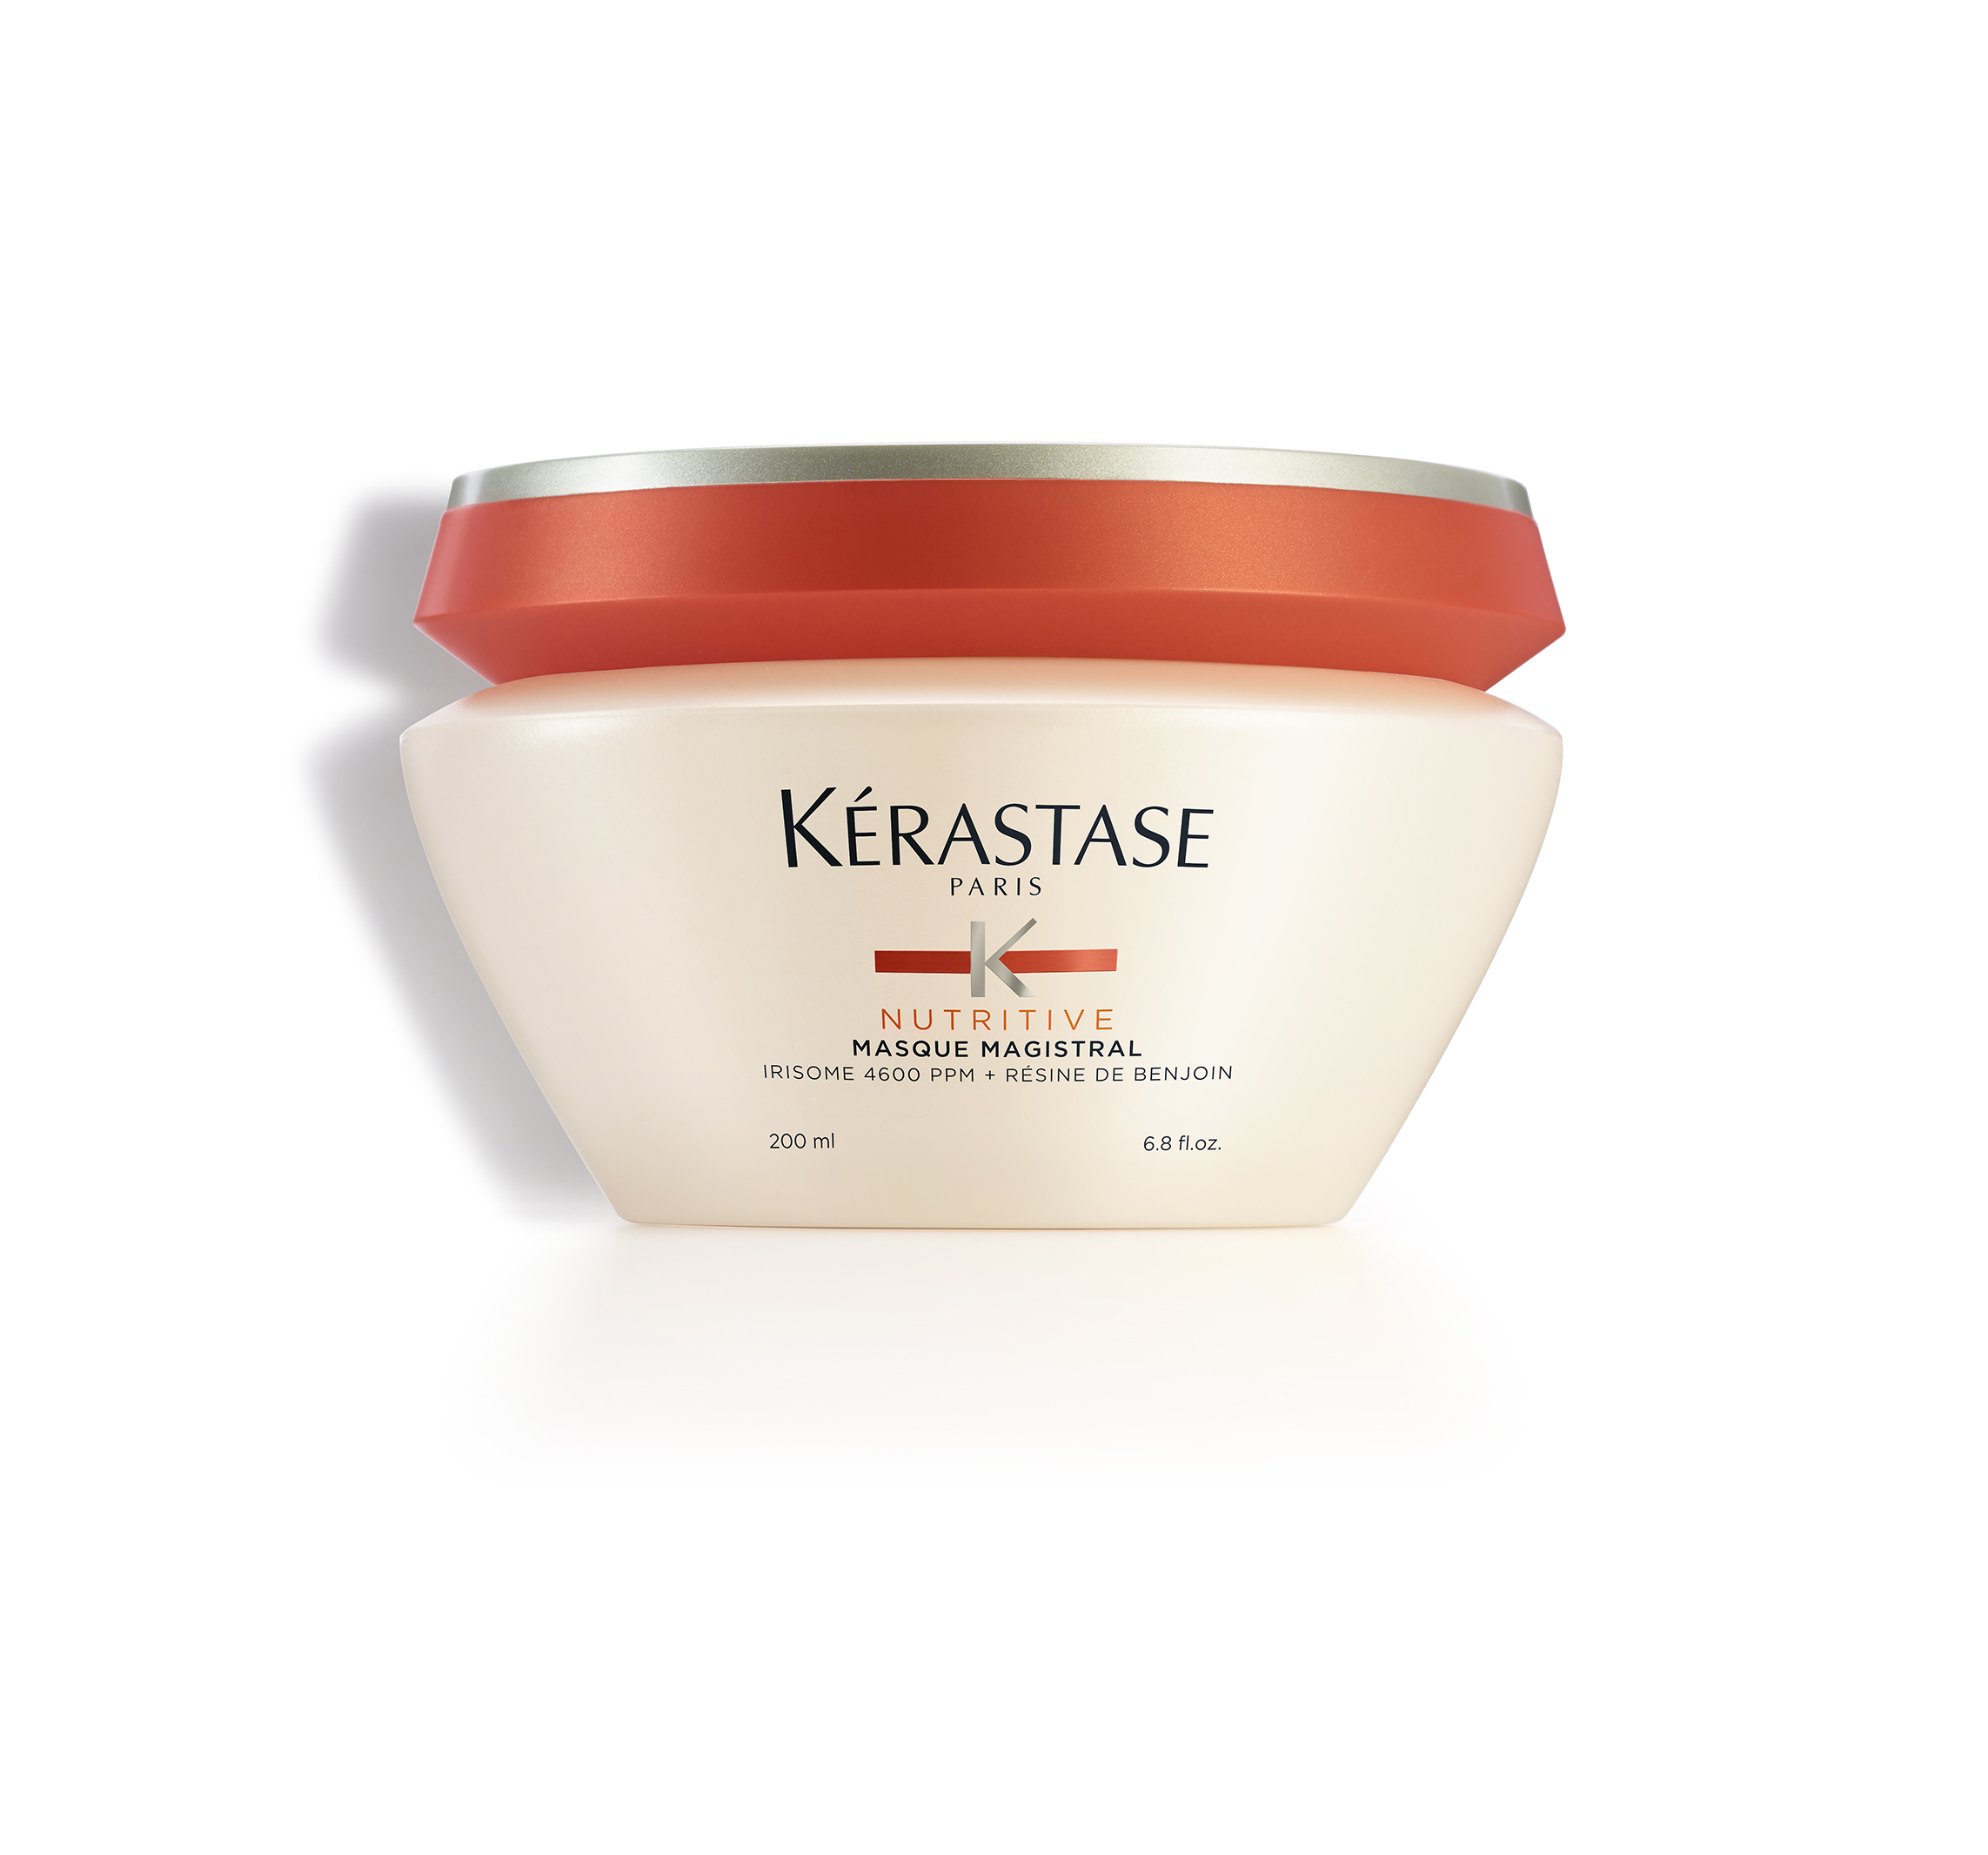 Masque Magistral 200 ml